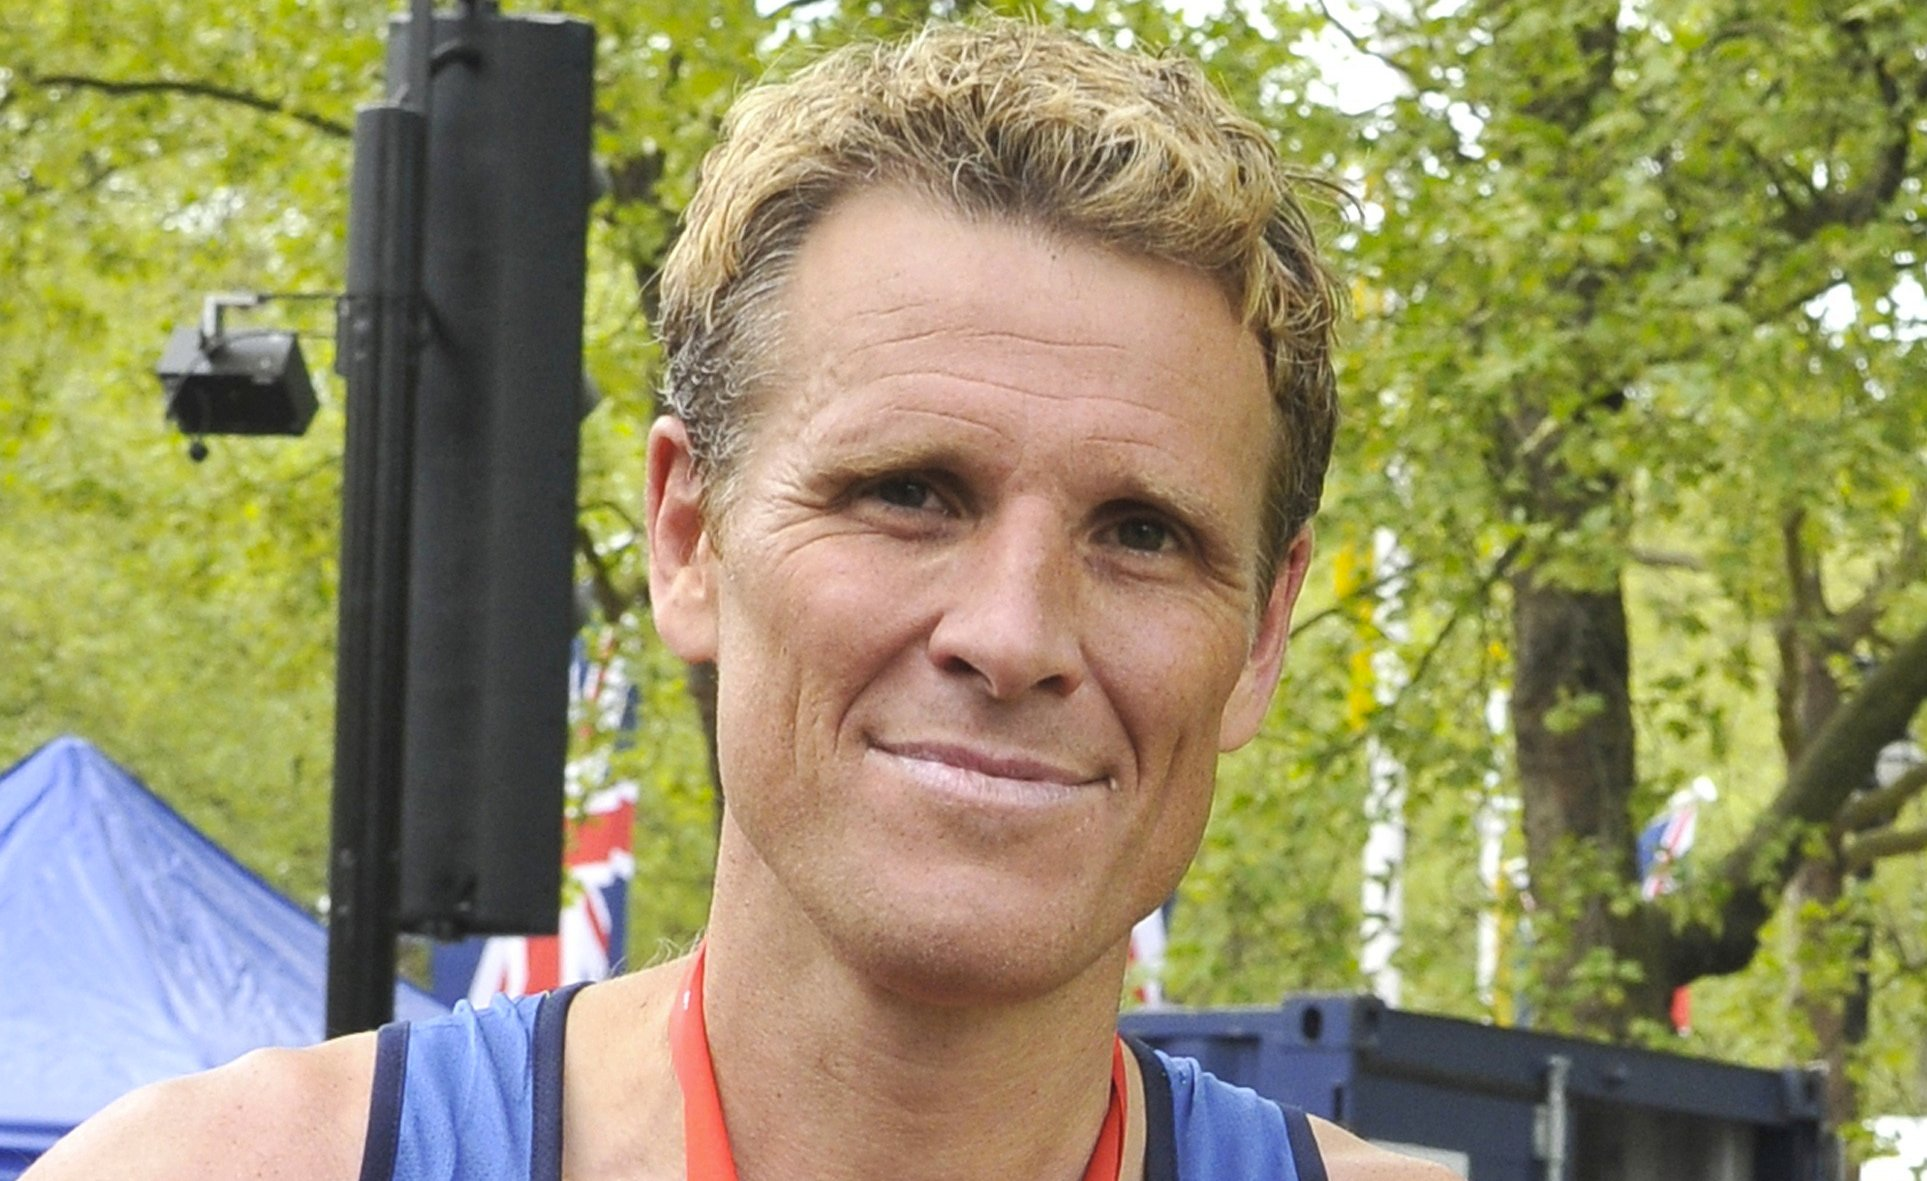 James Cracknell involved in a road accident just weeks before Strictly starts